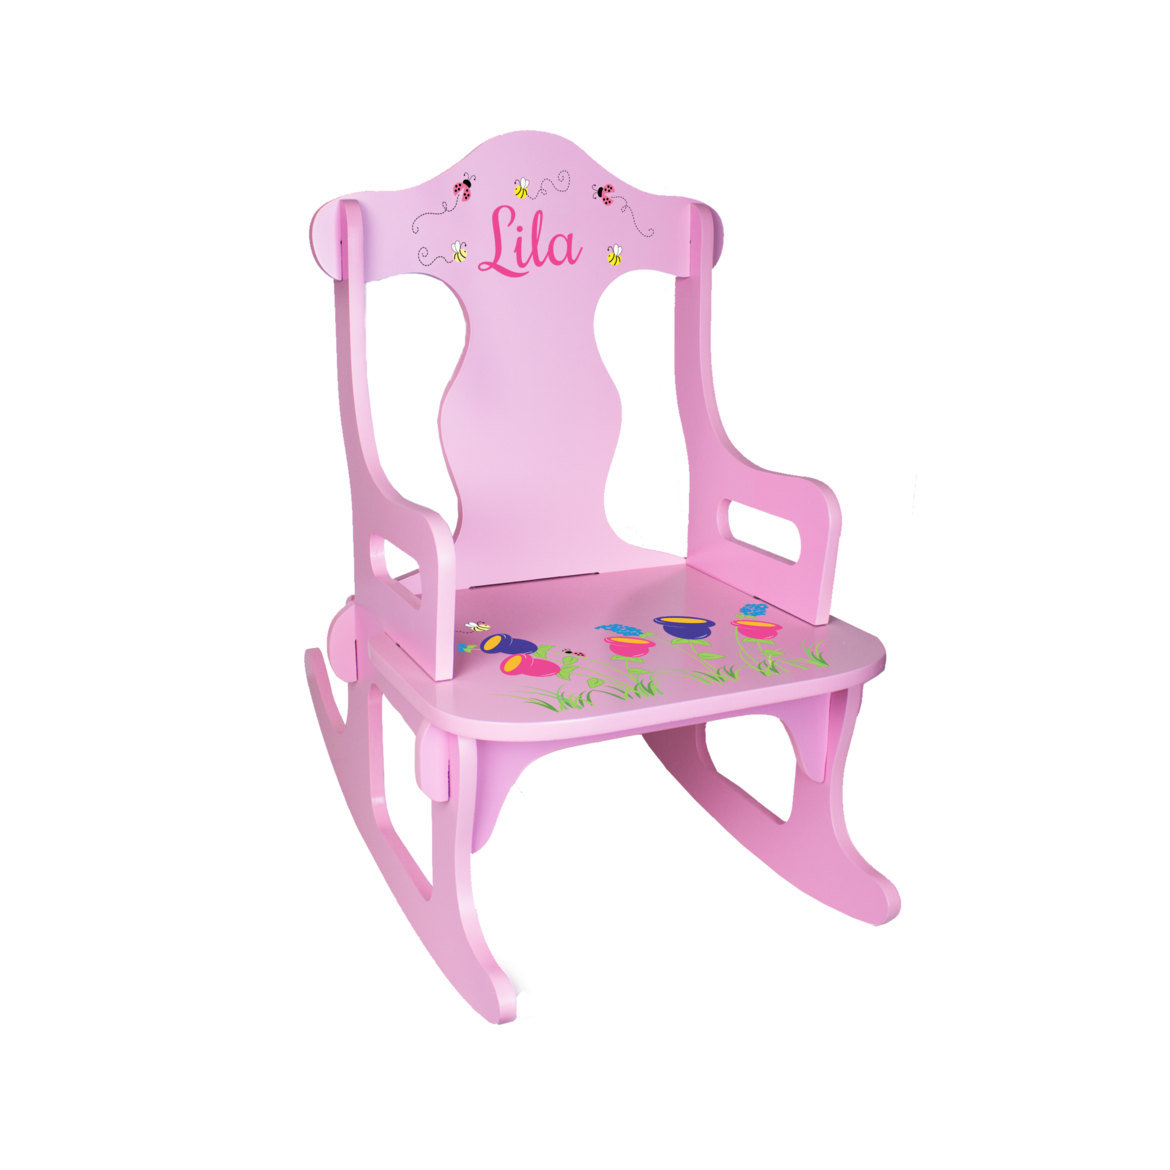 personalized kids chair il fullxfull xxm